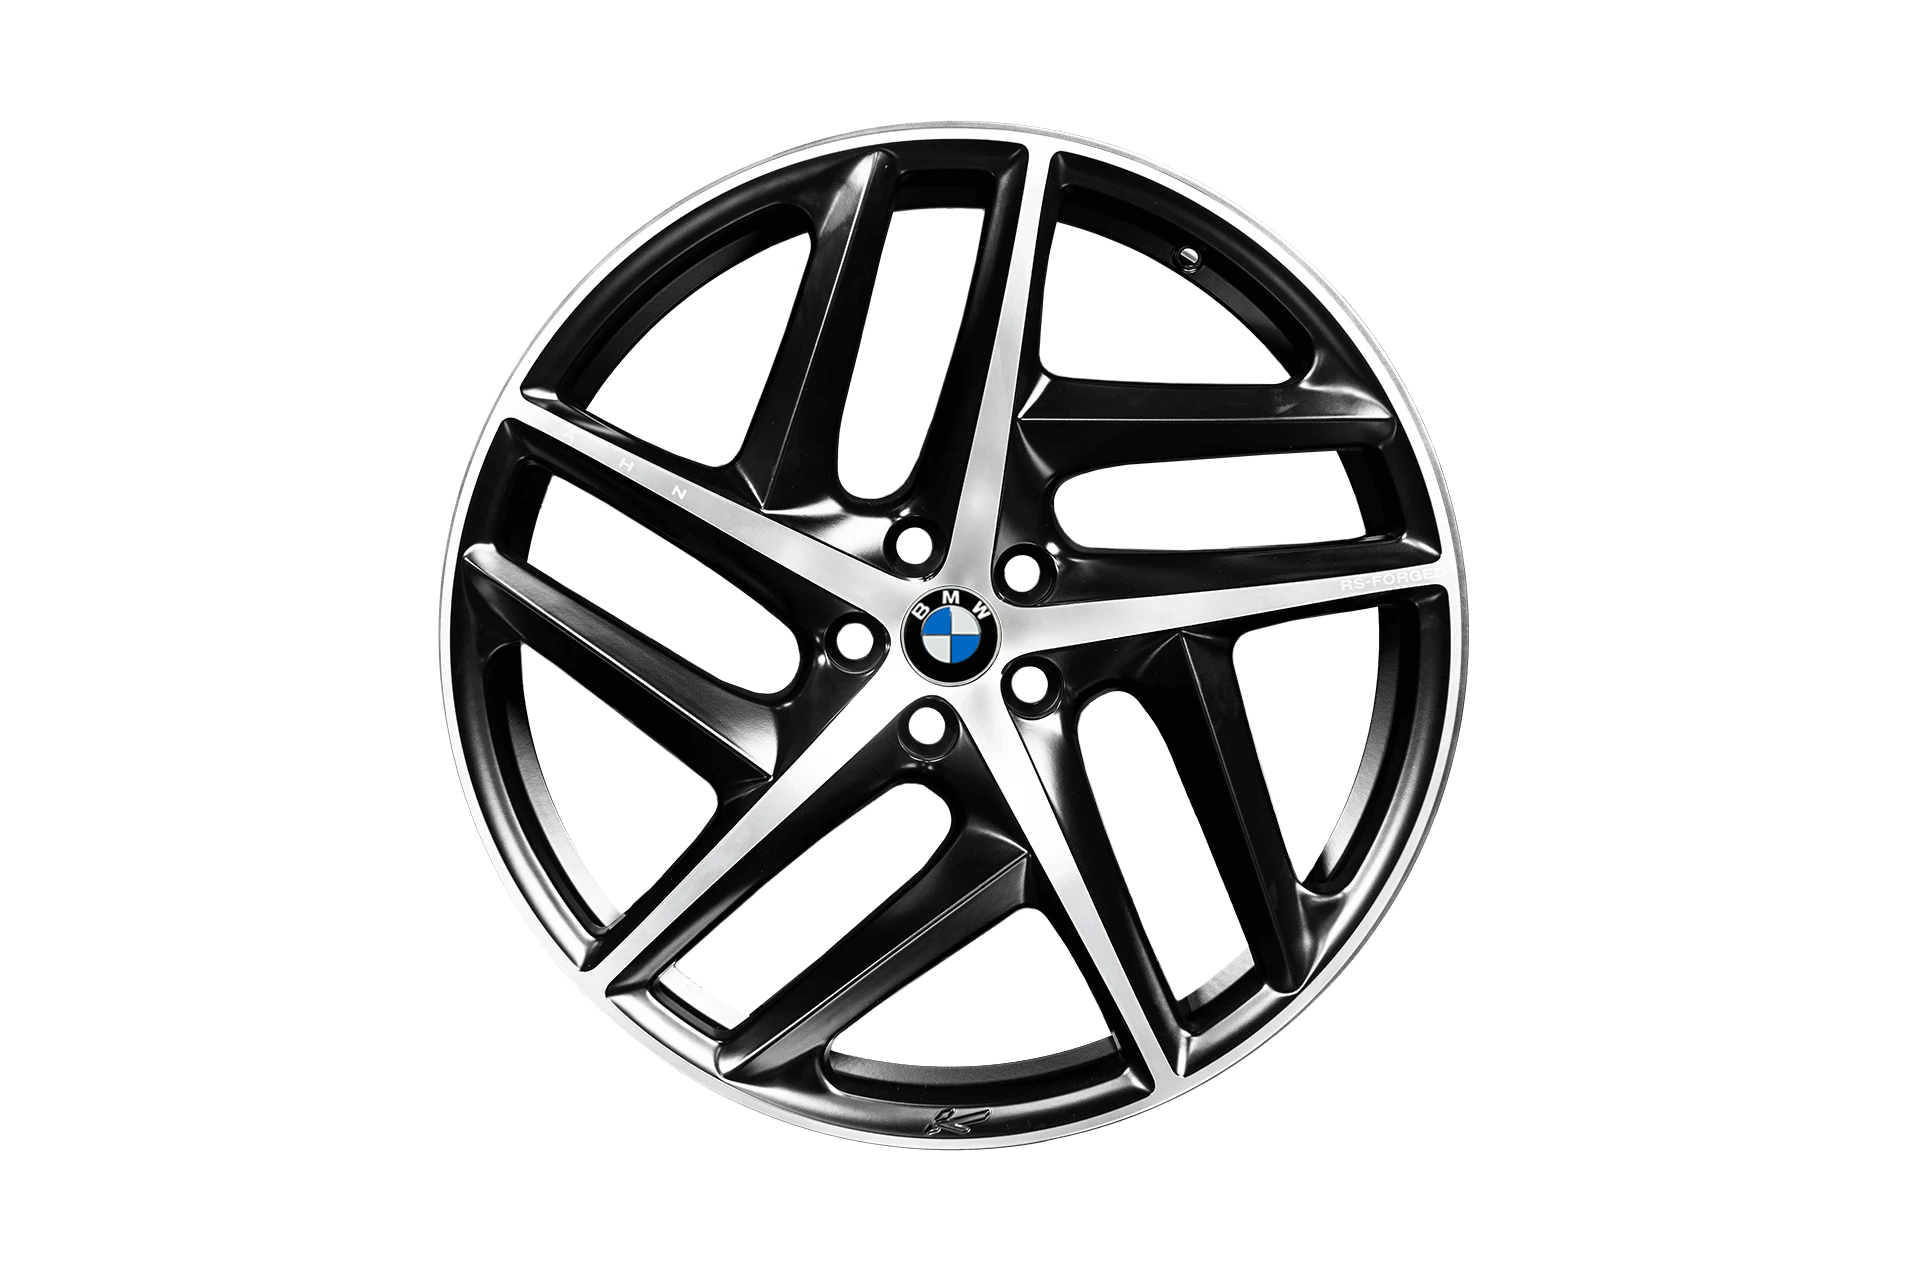 BMW i8 (2014-PRESENT) Type 52 RS-Forged Alloy Wheels